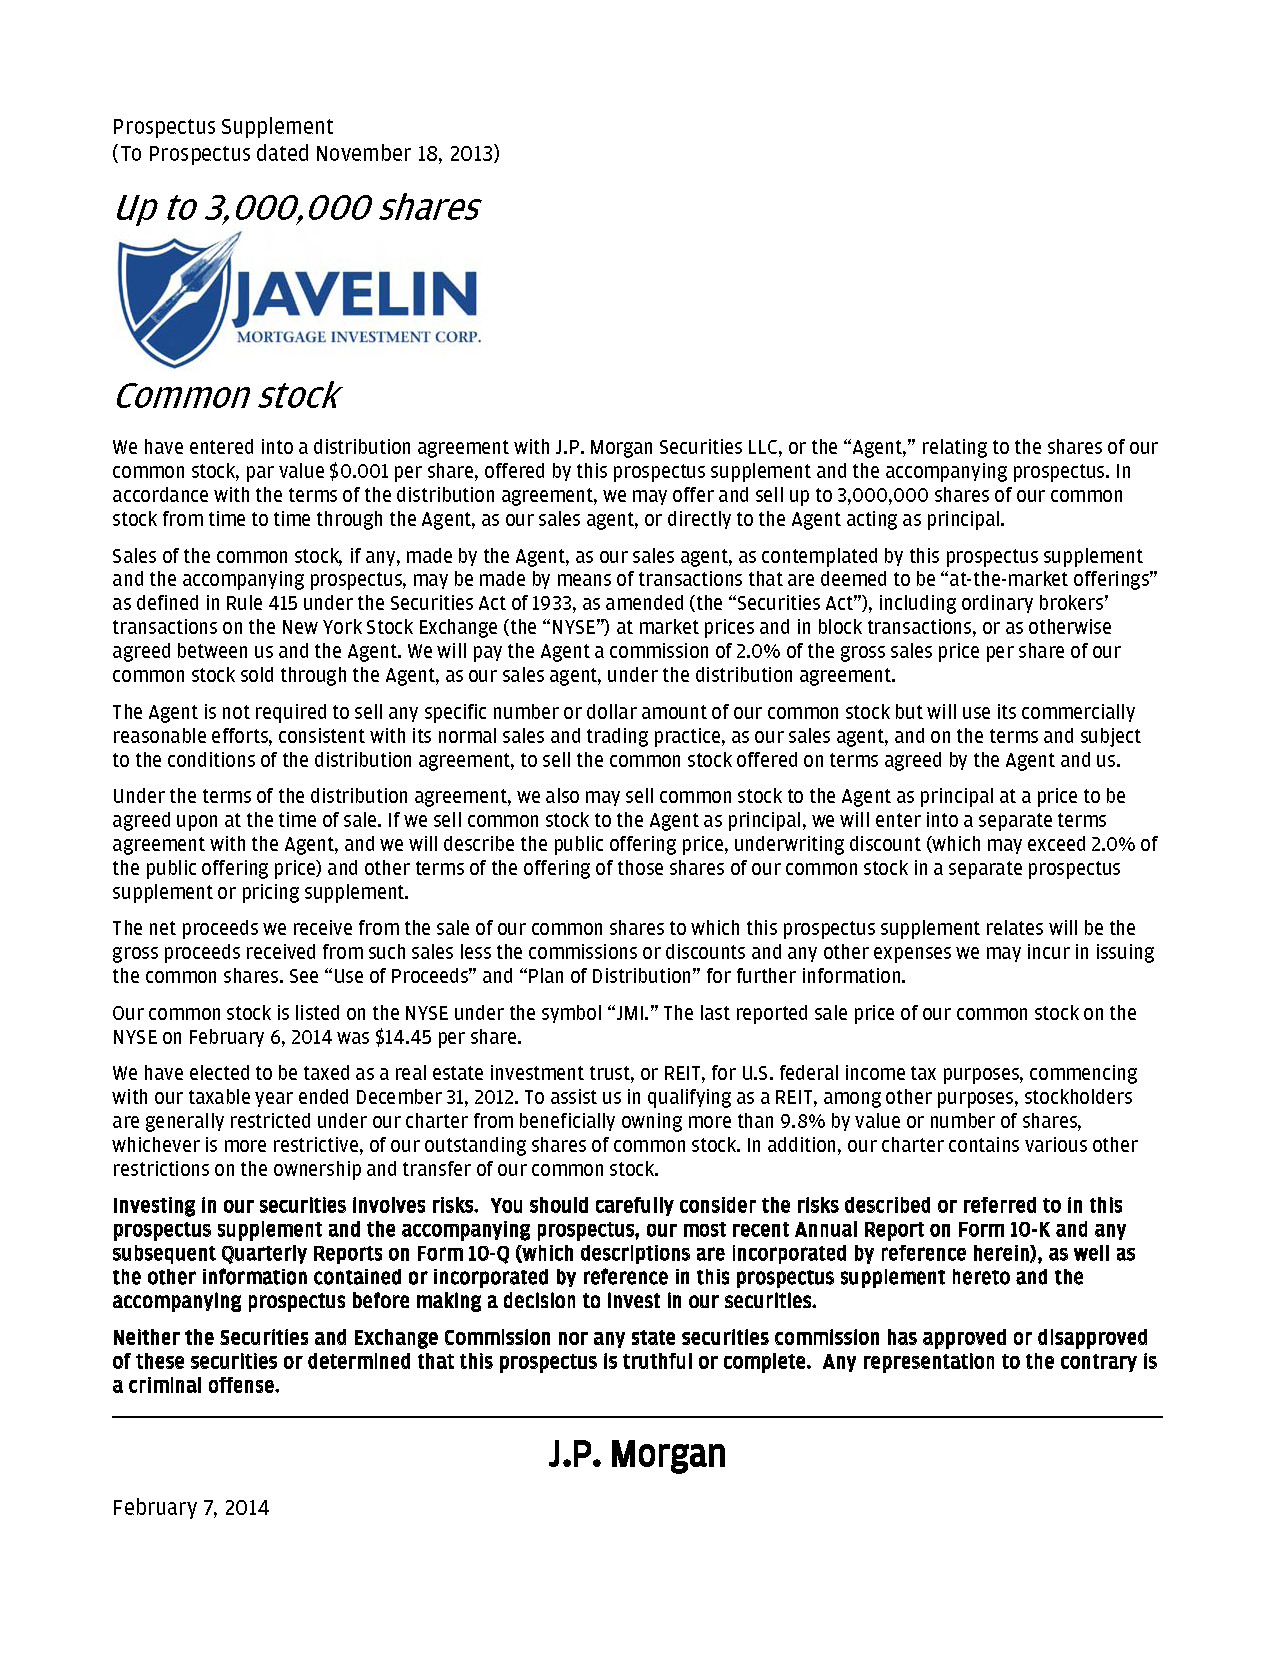 JAVELIN Mortgage Investment Corp.